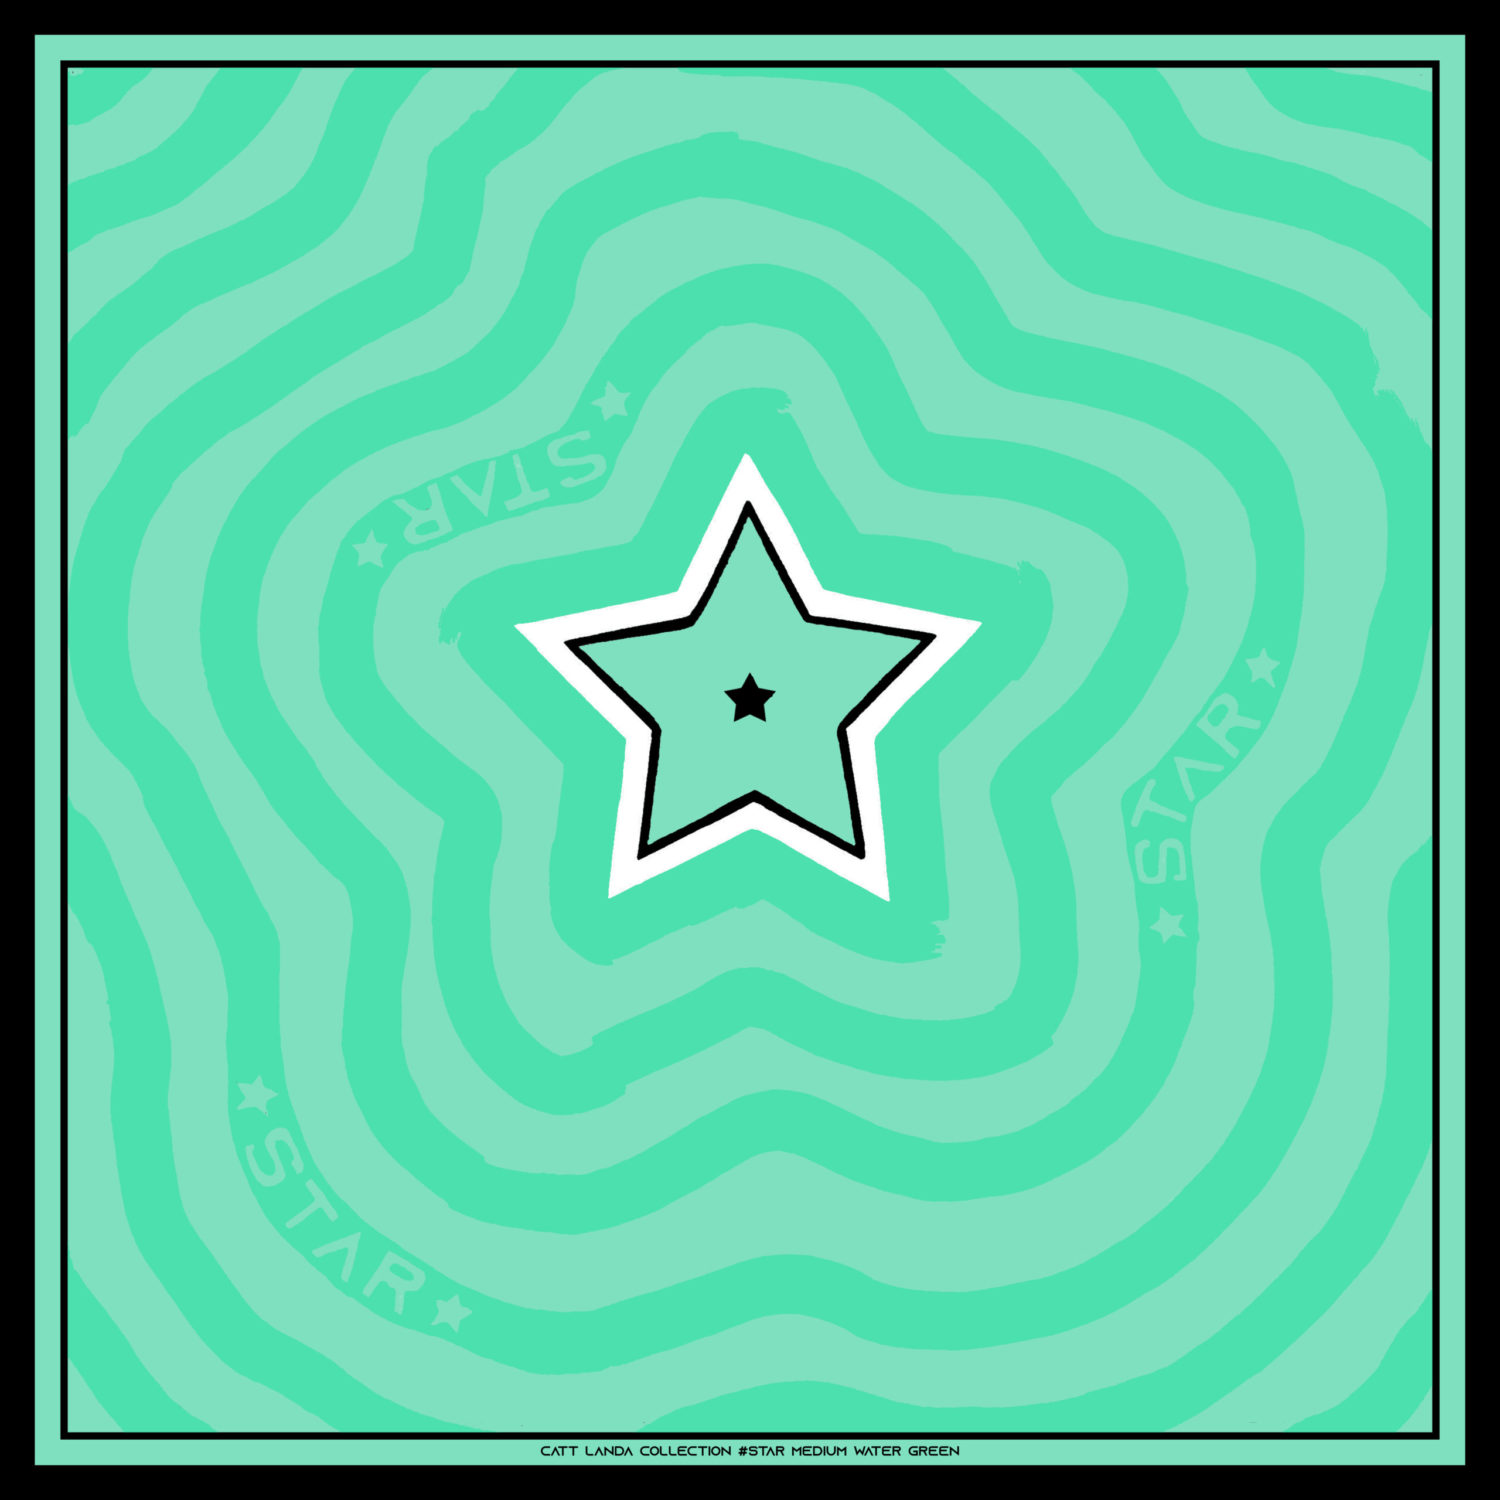 STAR Medium Water Green